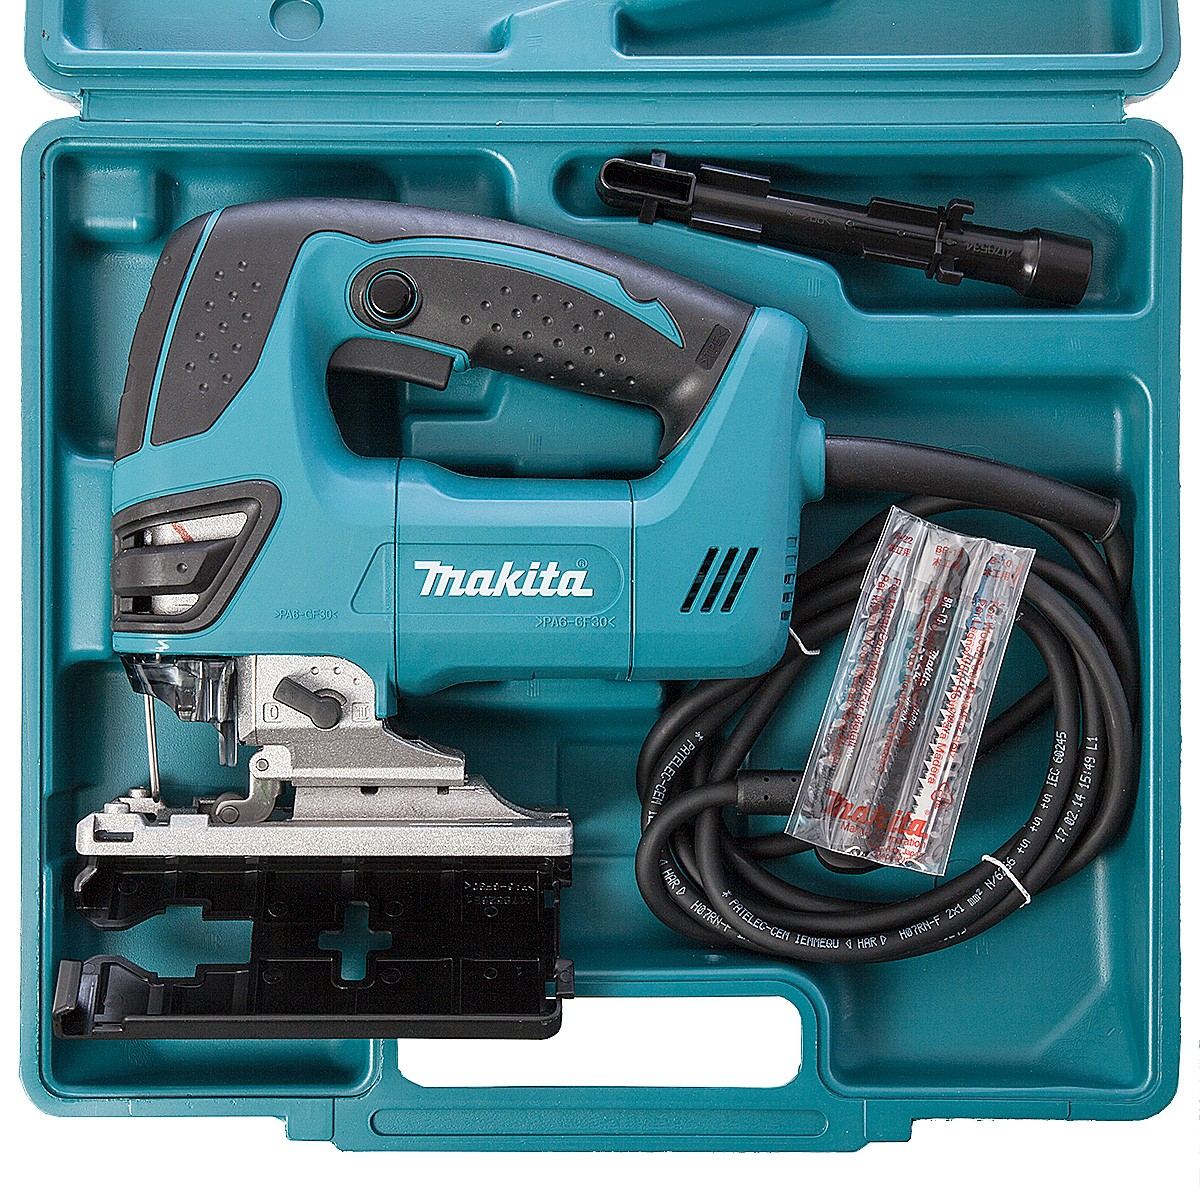 Makita 4350fct orbital action top handle jigsaw in carry case makita 4350fct orbital action top handle jigsaw in carry case greentooth Images